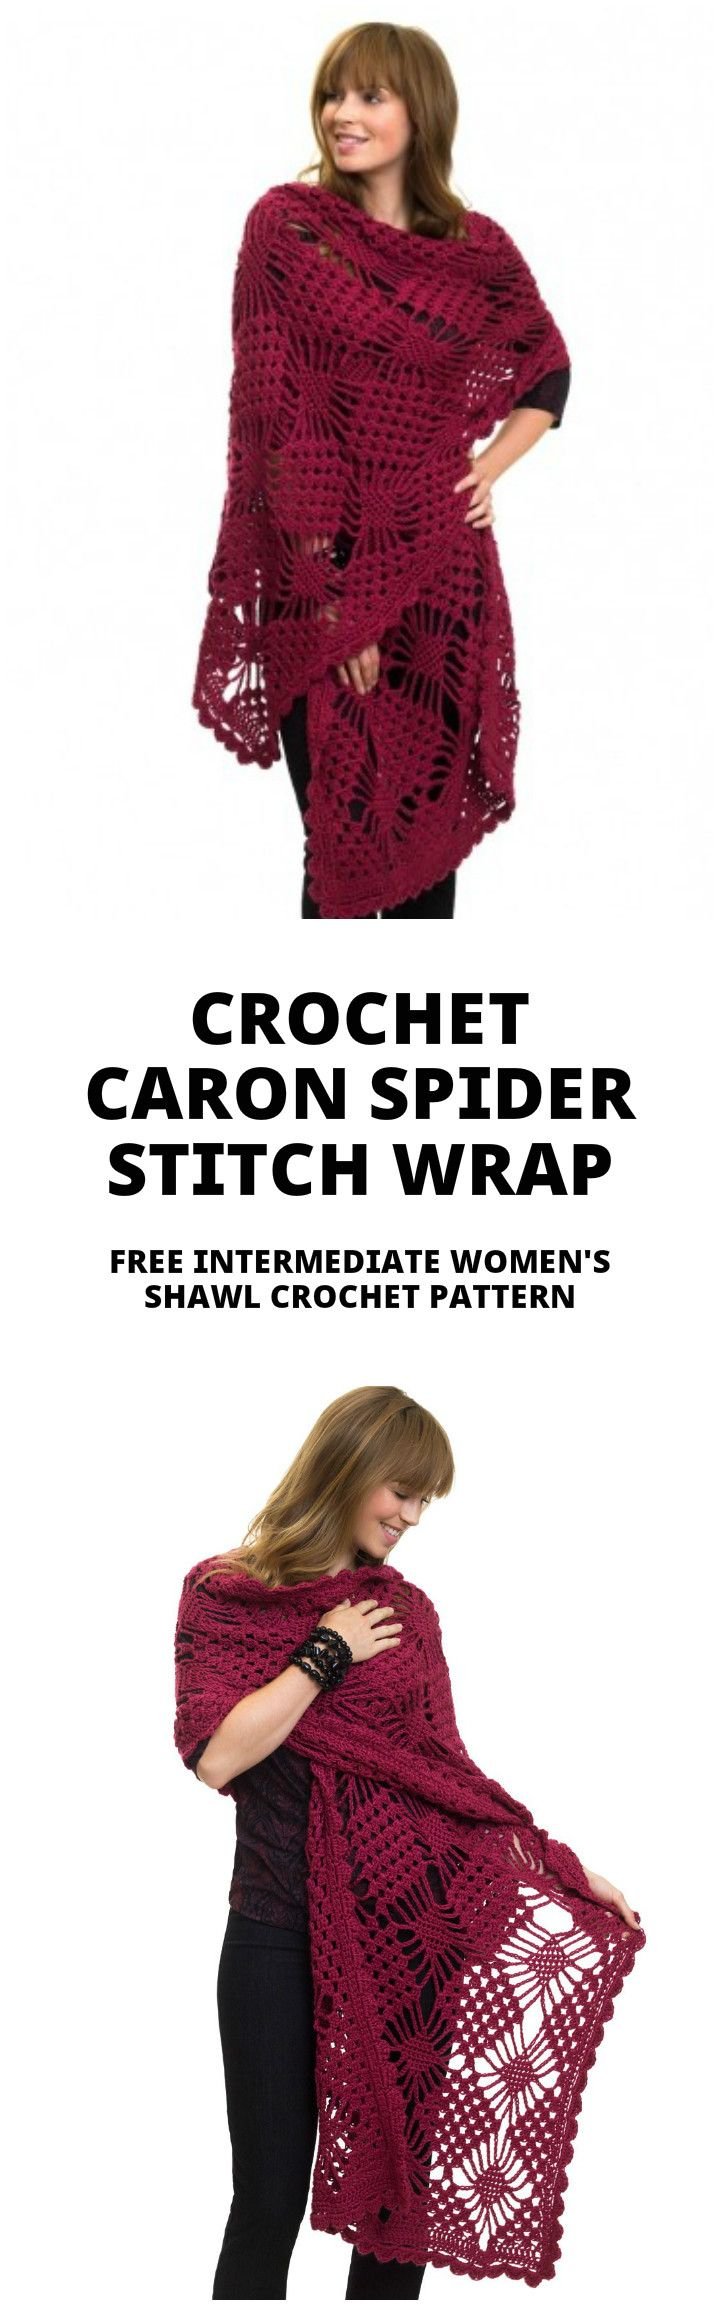 100 Free Crochet Shawl Patterns - Free Crochet Patterns - Page 5 of ...